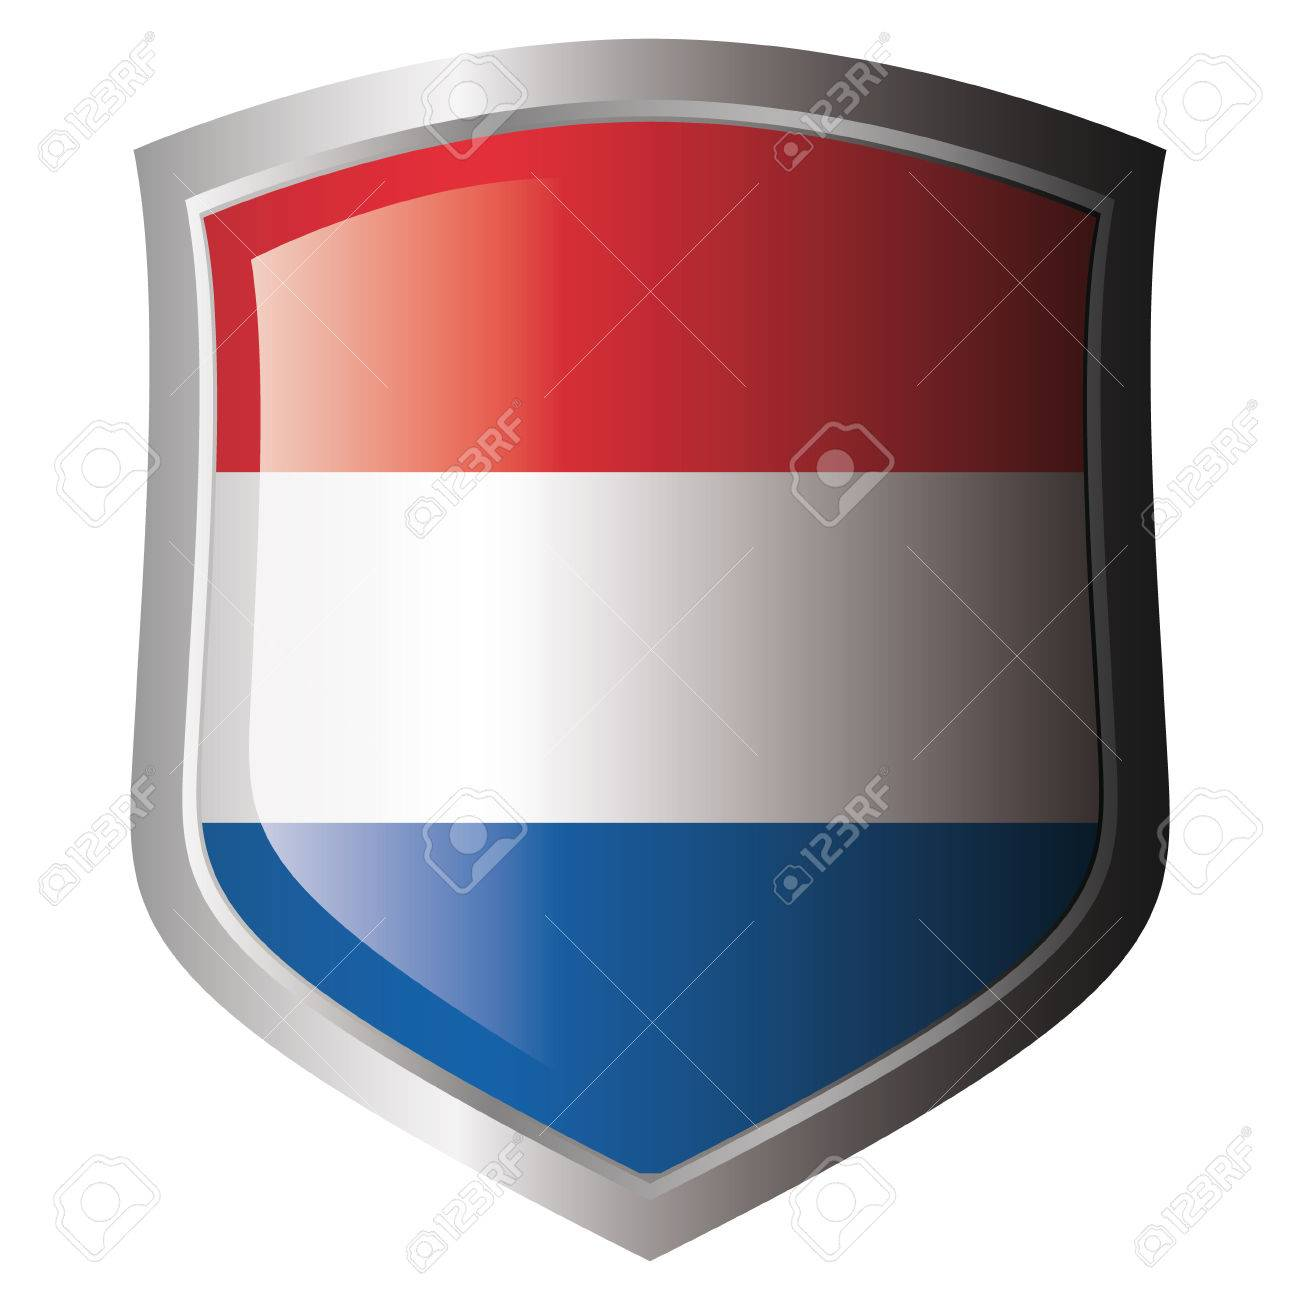 holland flag on metal shiny shield. Collection of flags on shield against white background. Isolated object. Stock Vector - 5871977